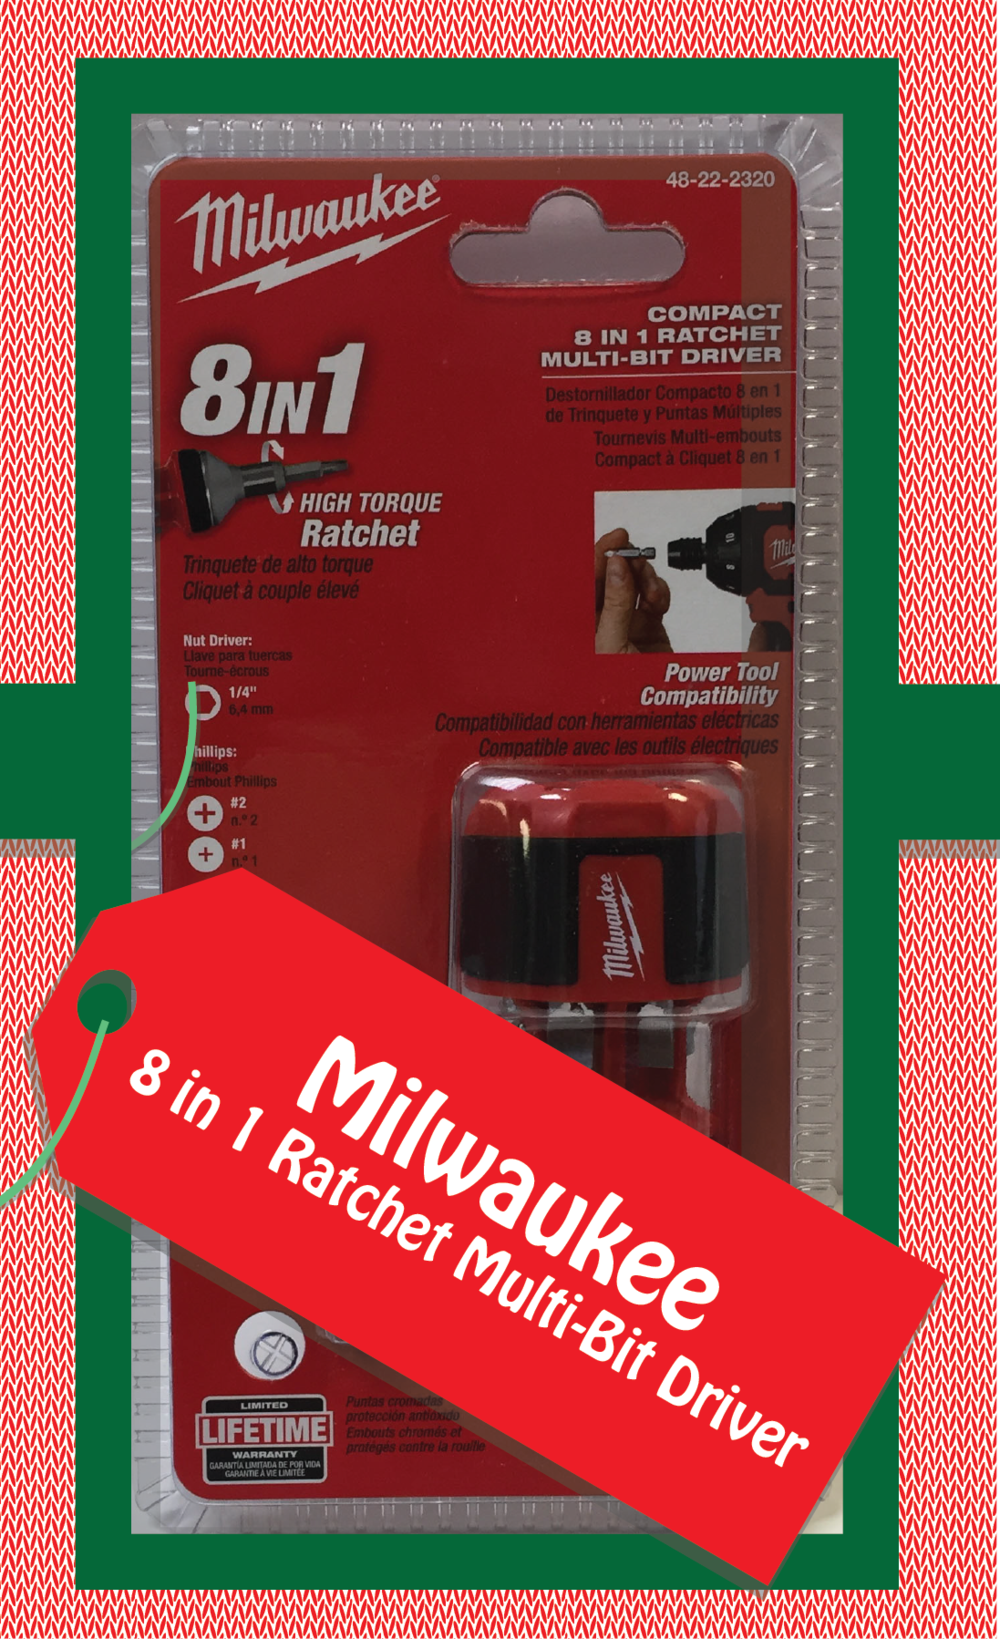 Milwaukee 8in1 Ratchet Multi-Bit Driver. Part Number: 48-22-2320